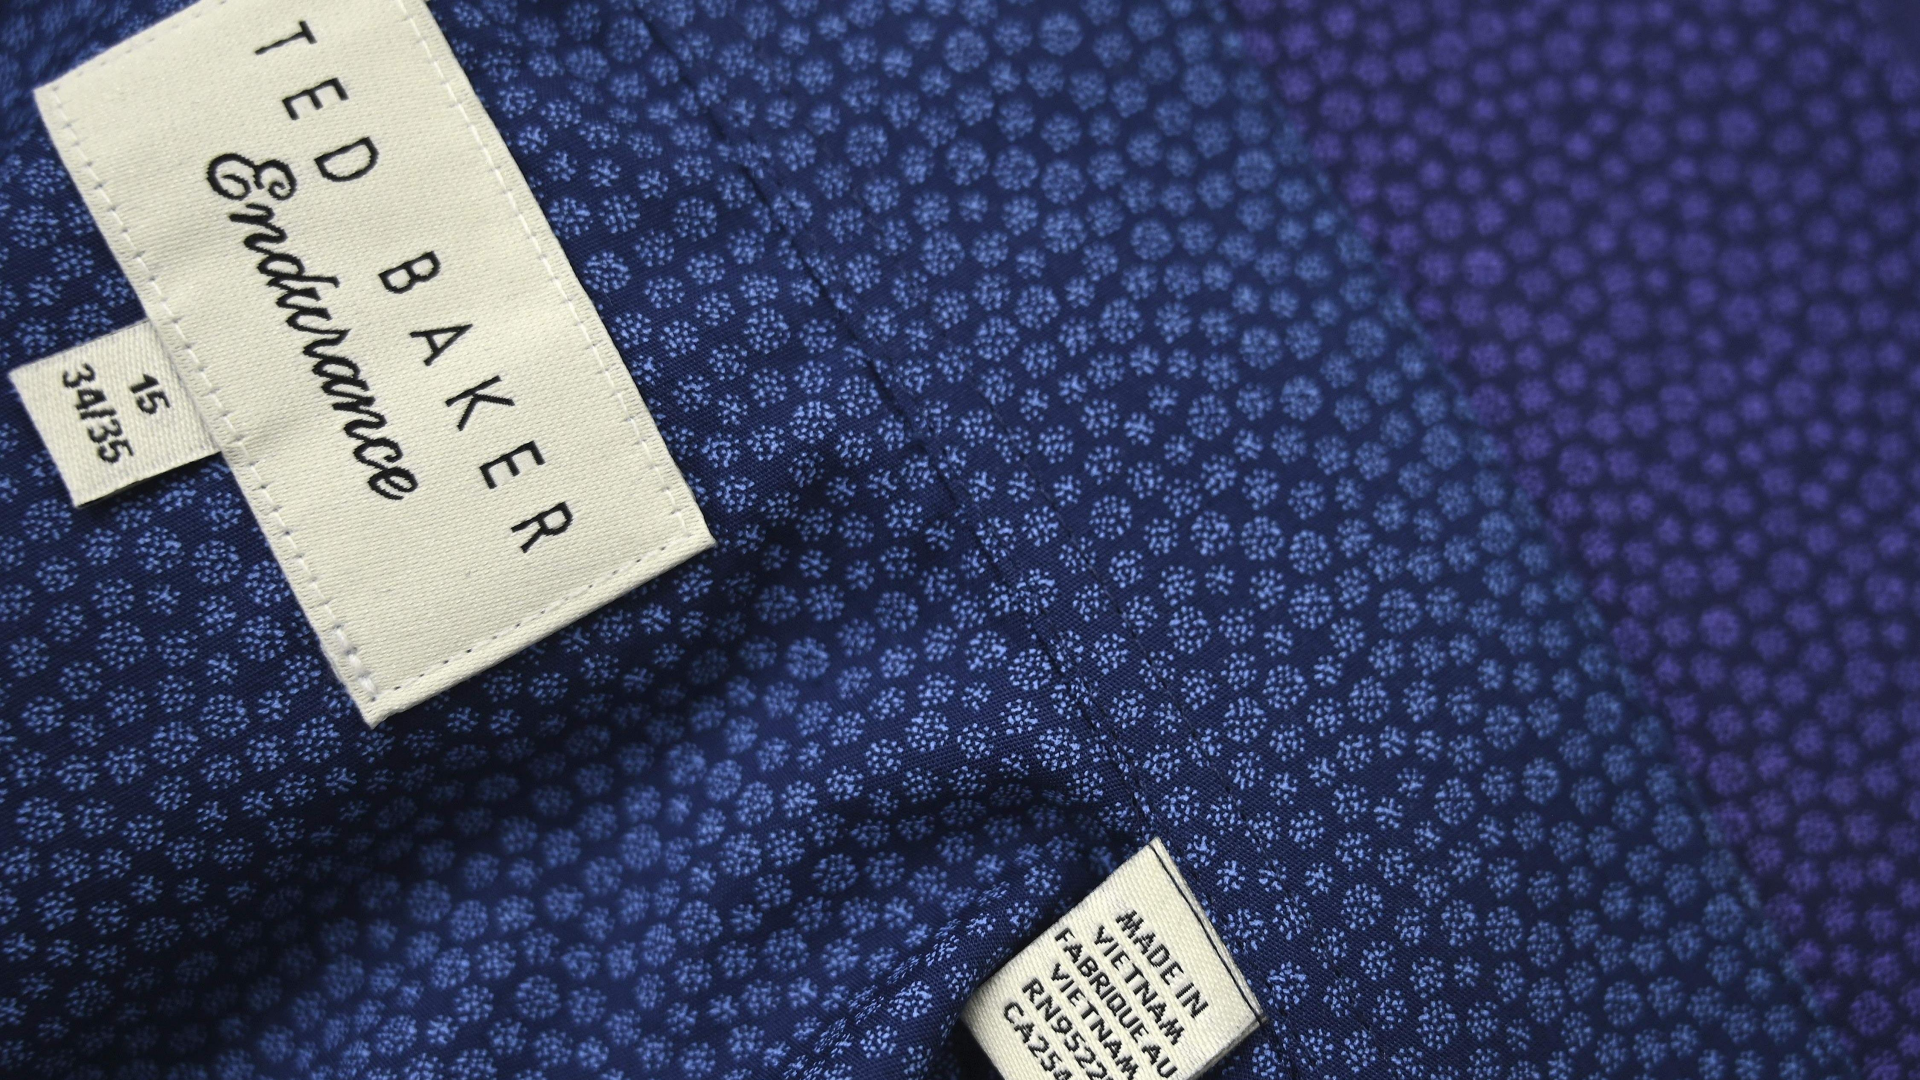 A Ted Baker brand shirt at a factory in Hanoi